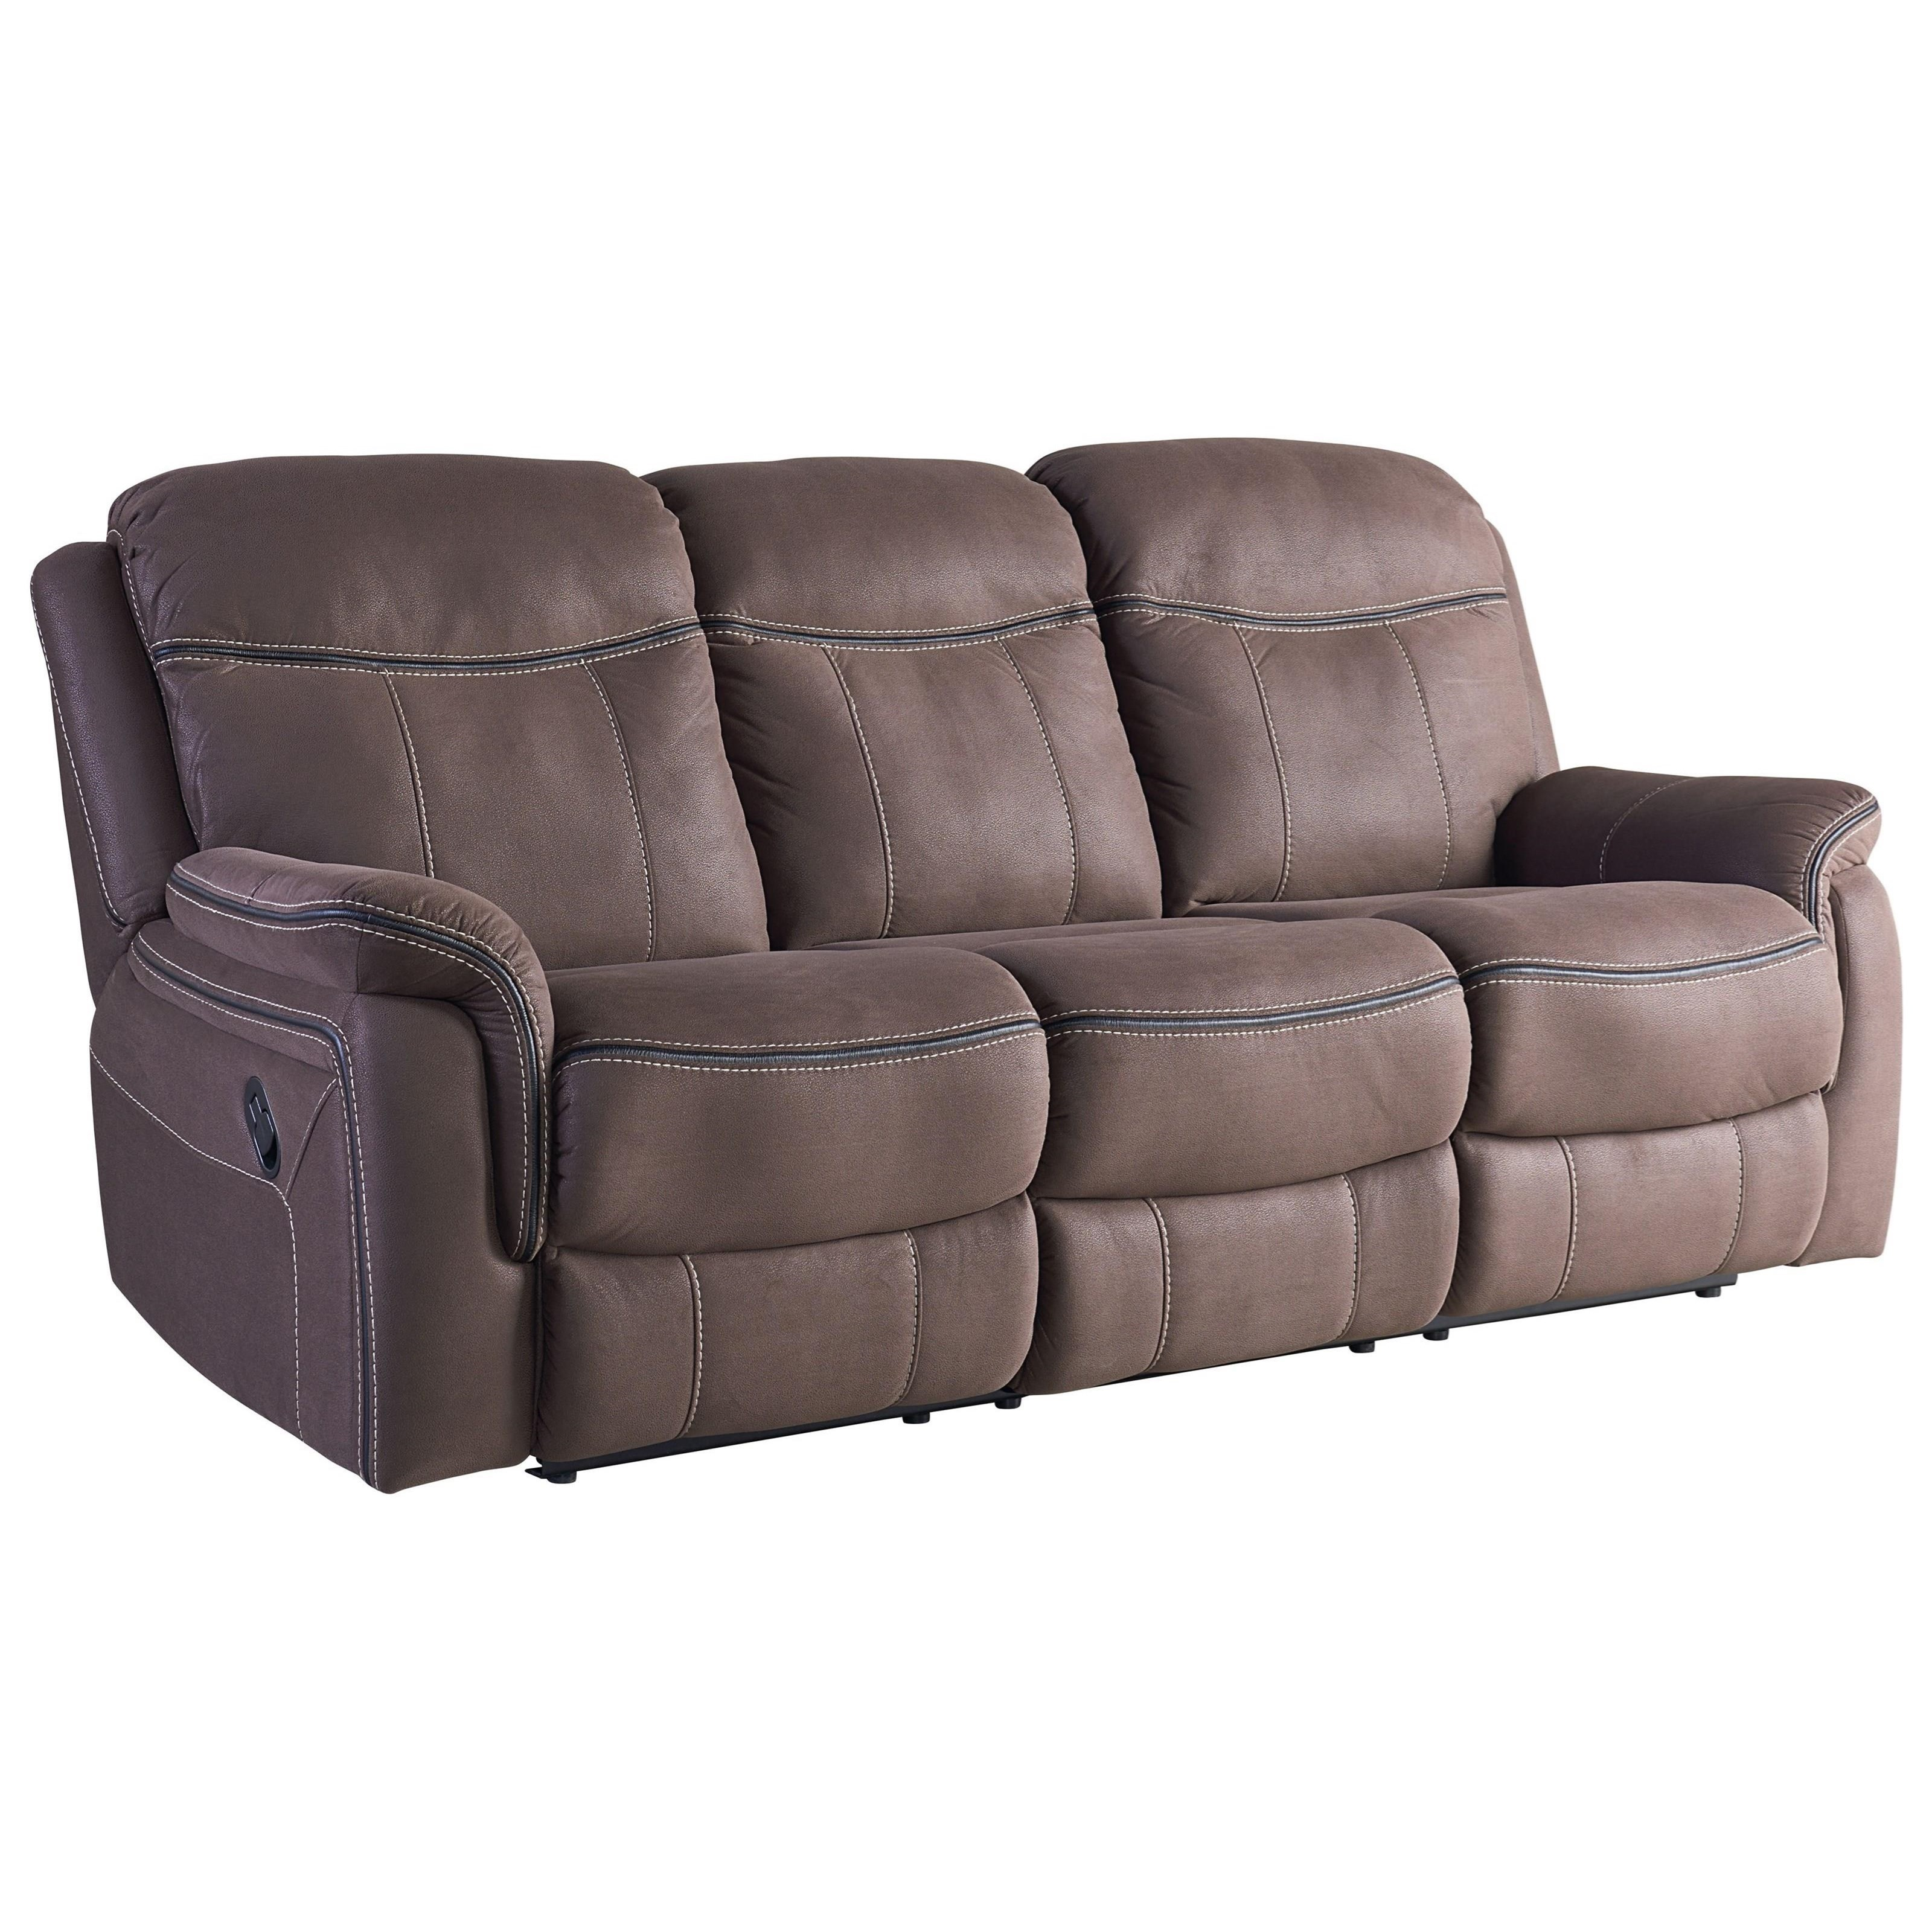 Champion Reclining Sofa by Standard Furniture at Adcock Furniture